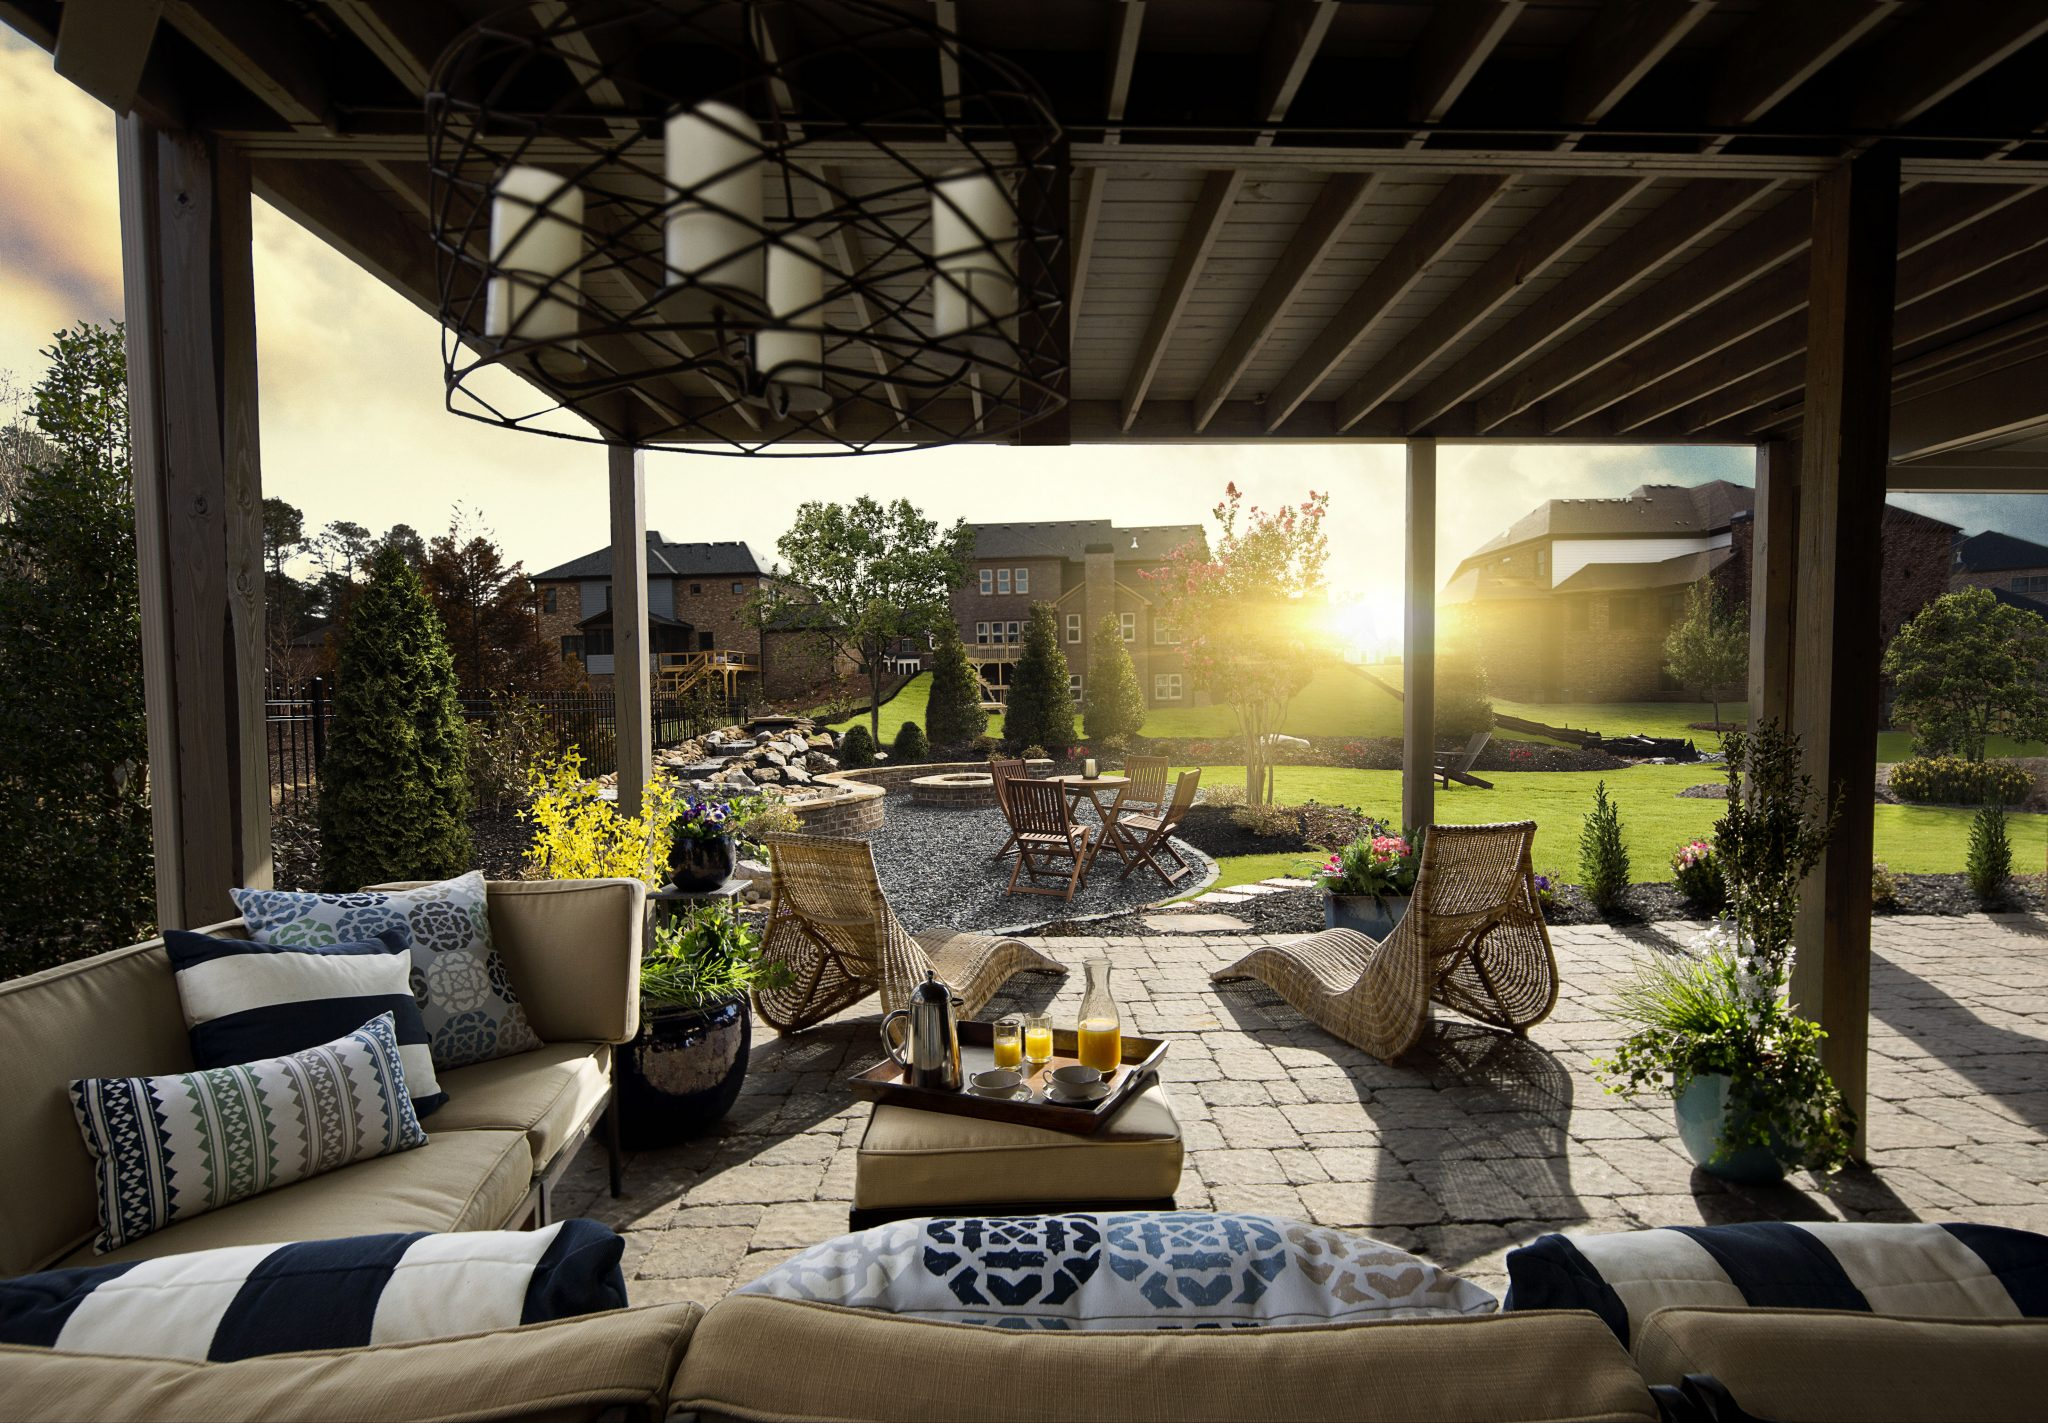 Outdoor Design outdoor design trends that will rule 2014 | edward andrews homes